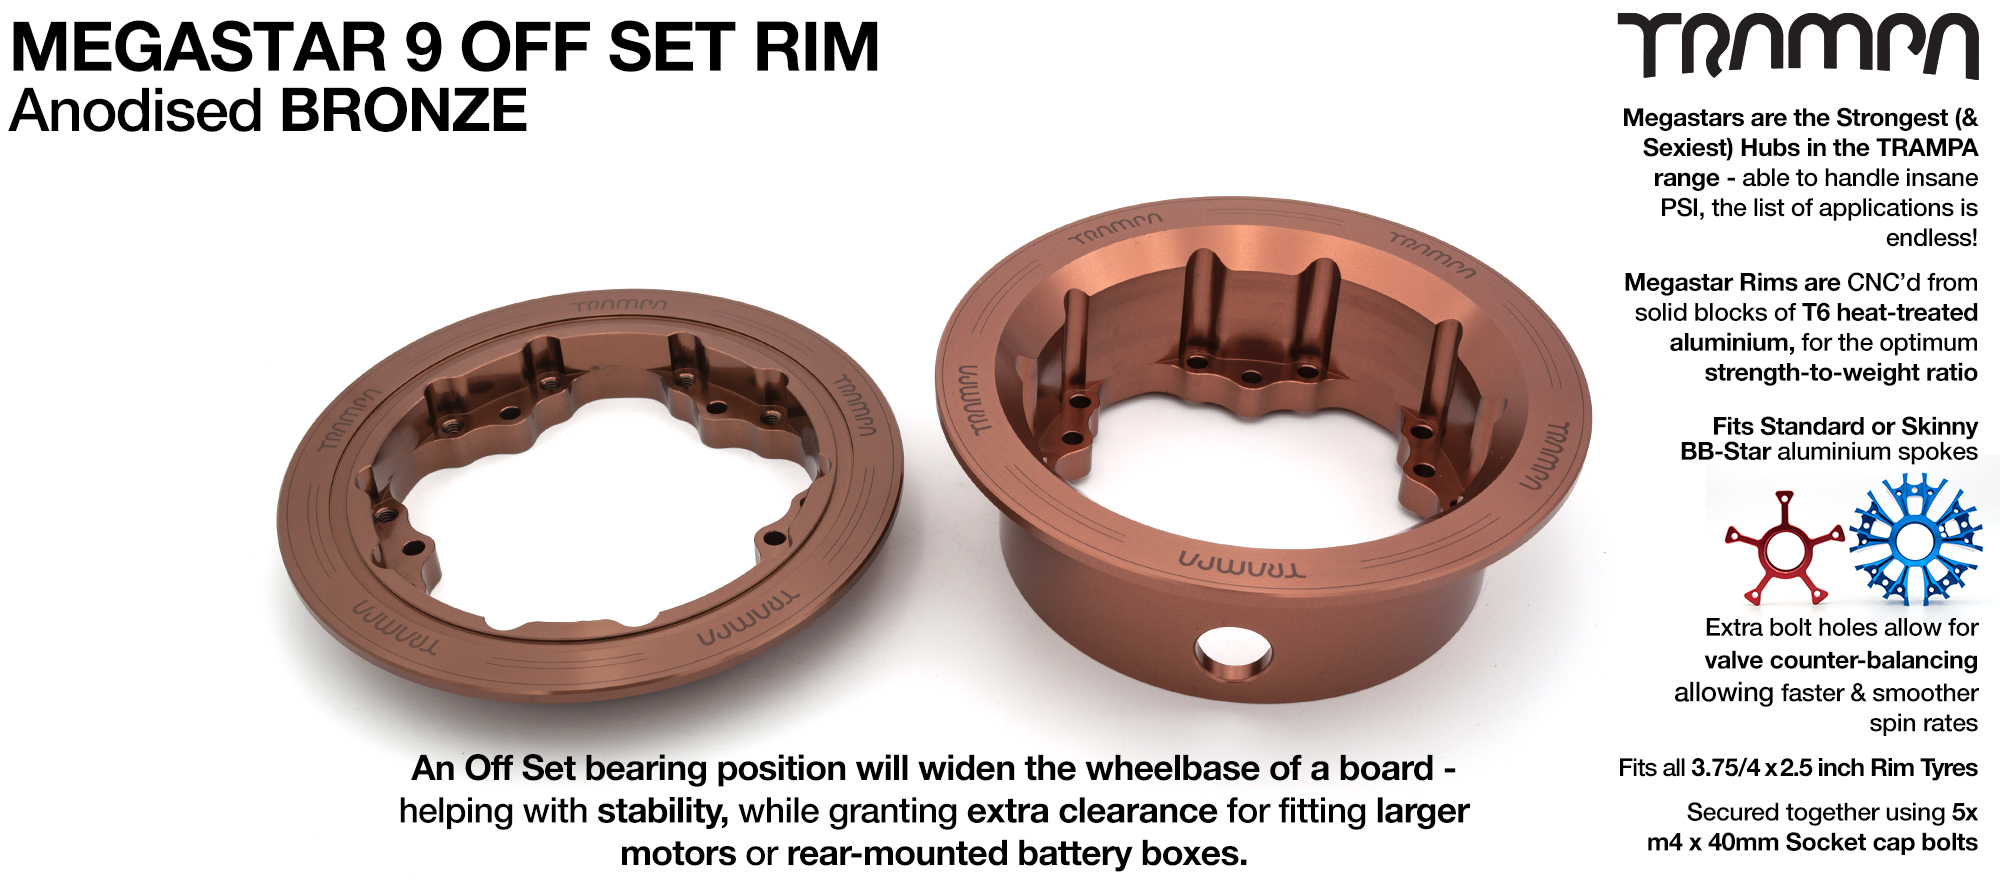 9 Inch DEEP DISH Off-Set MEGASTAR Rims BRONZE - Place two on the rear of your Electric Mountainboard for extra Grip & Top Speed!